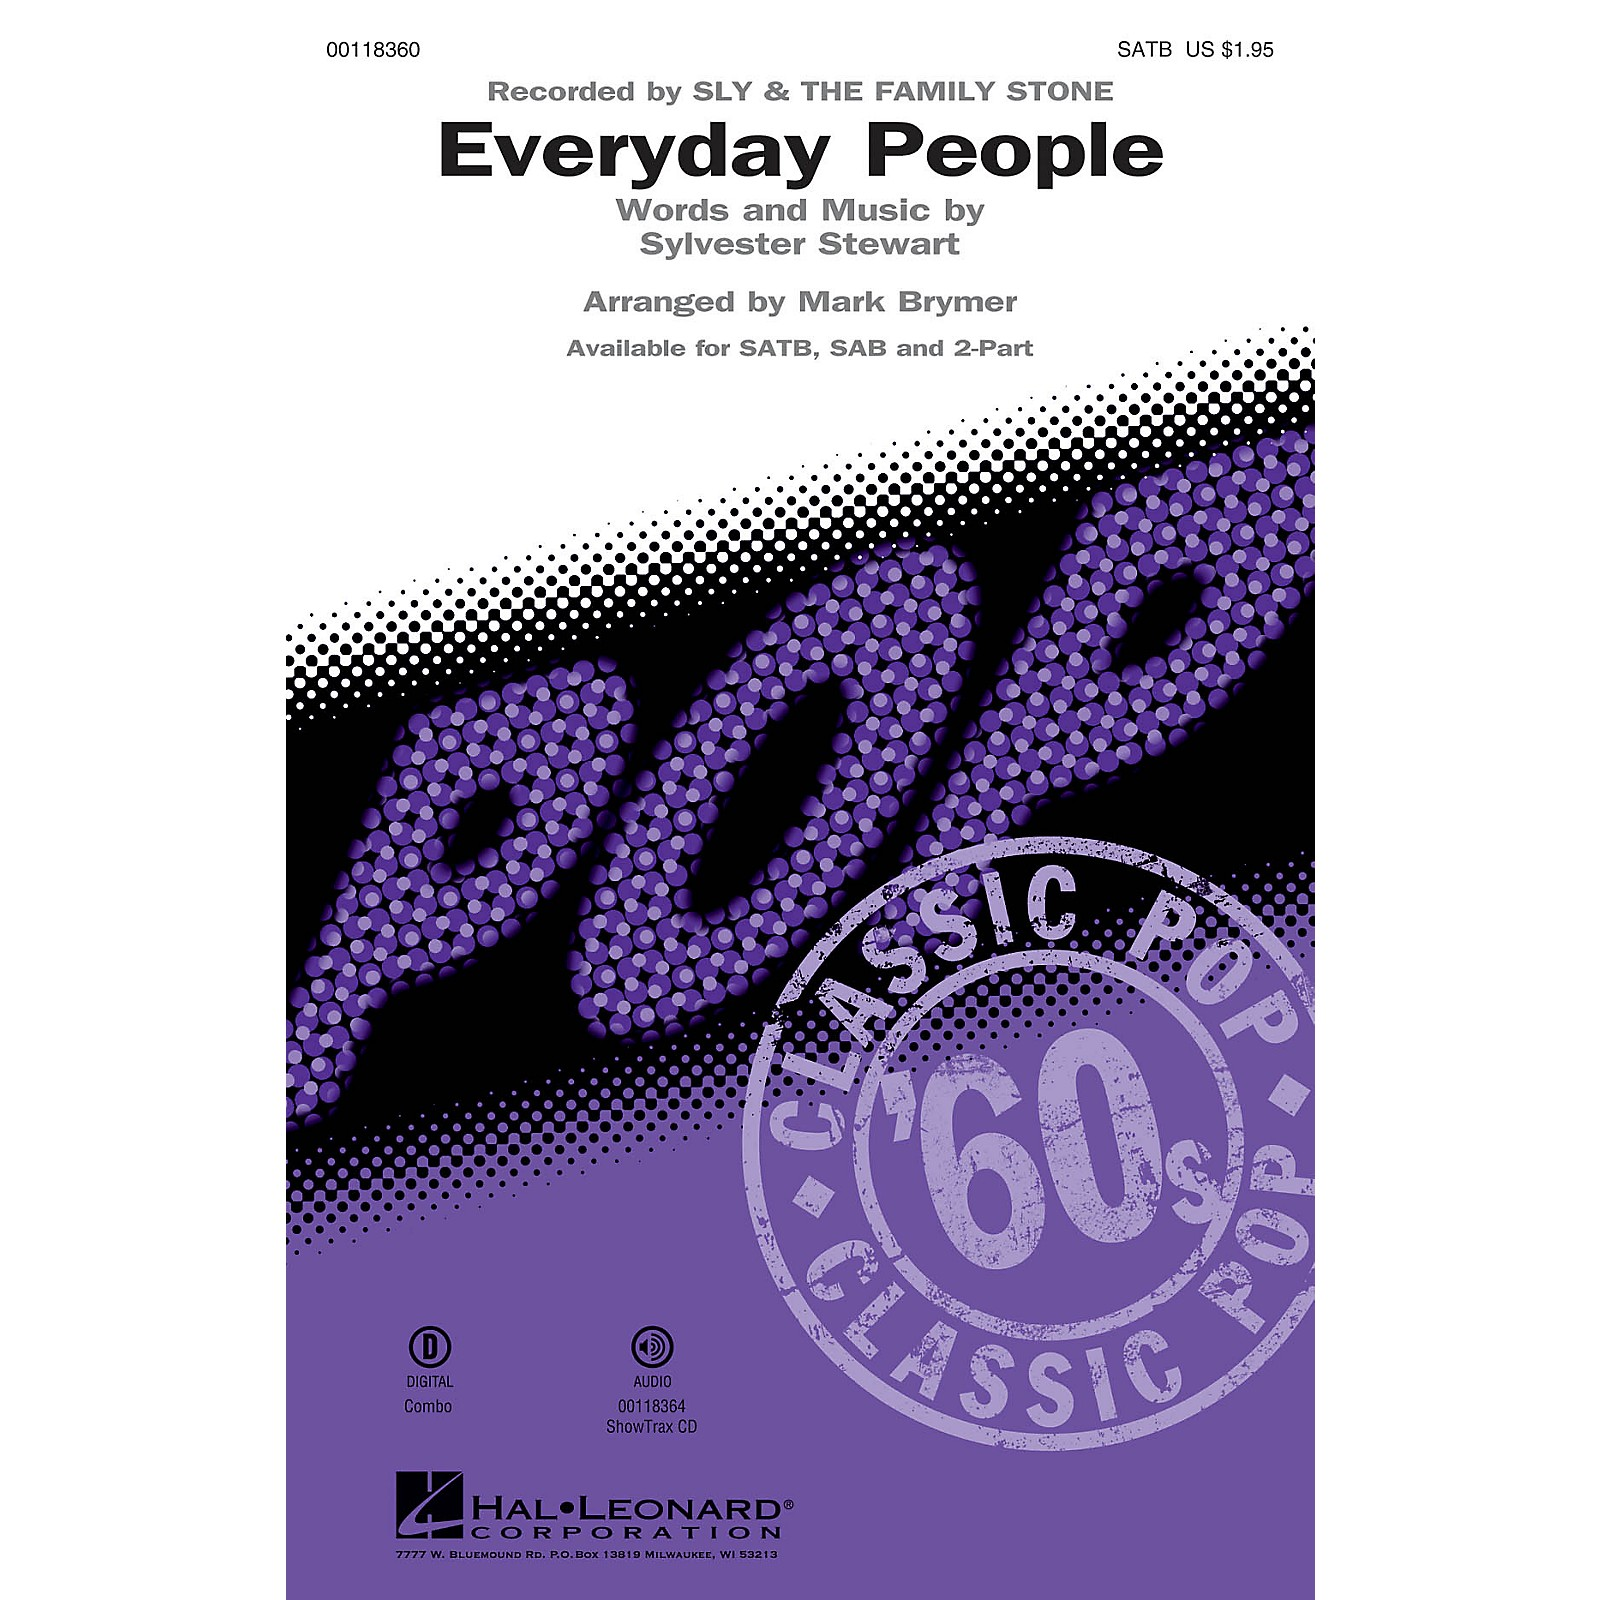 Hal Leonard Everyday People (SATB) SATB by Sly and the Family Stone arranged by Mark Brymer